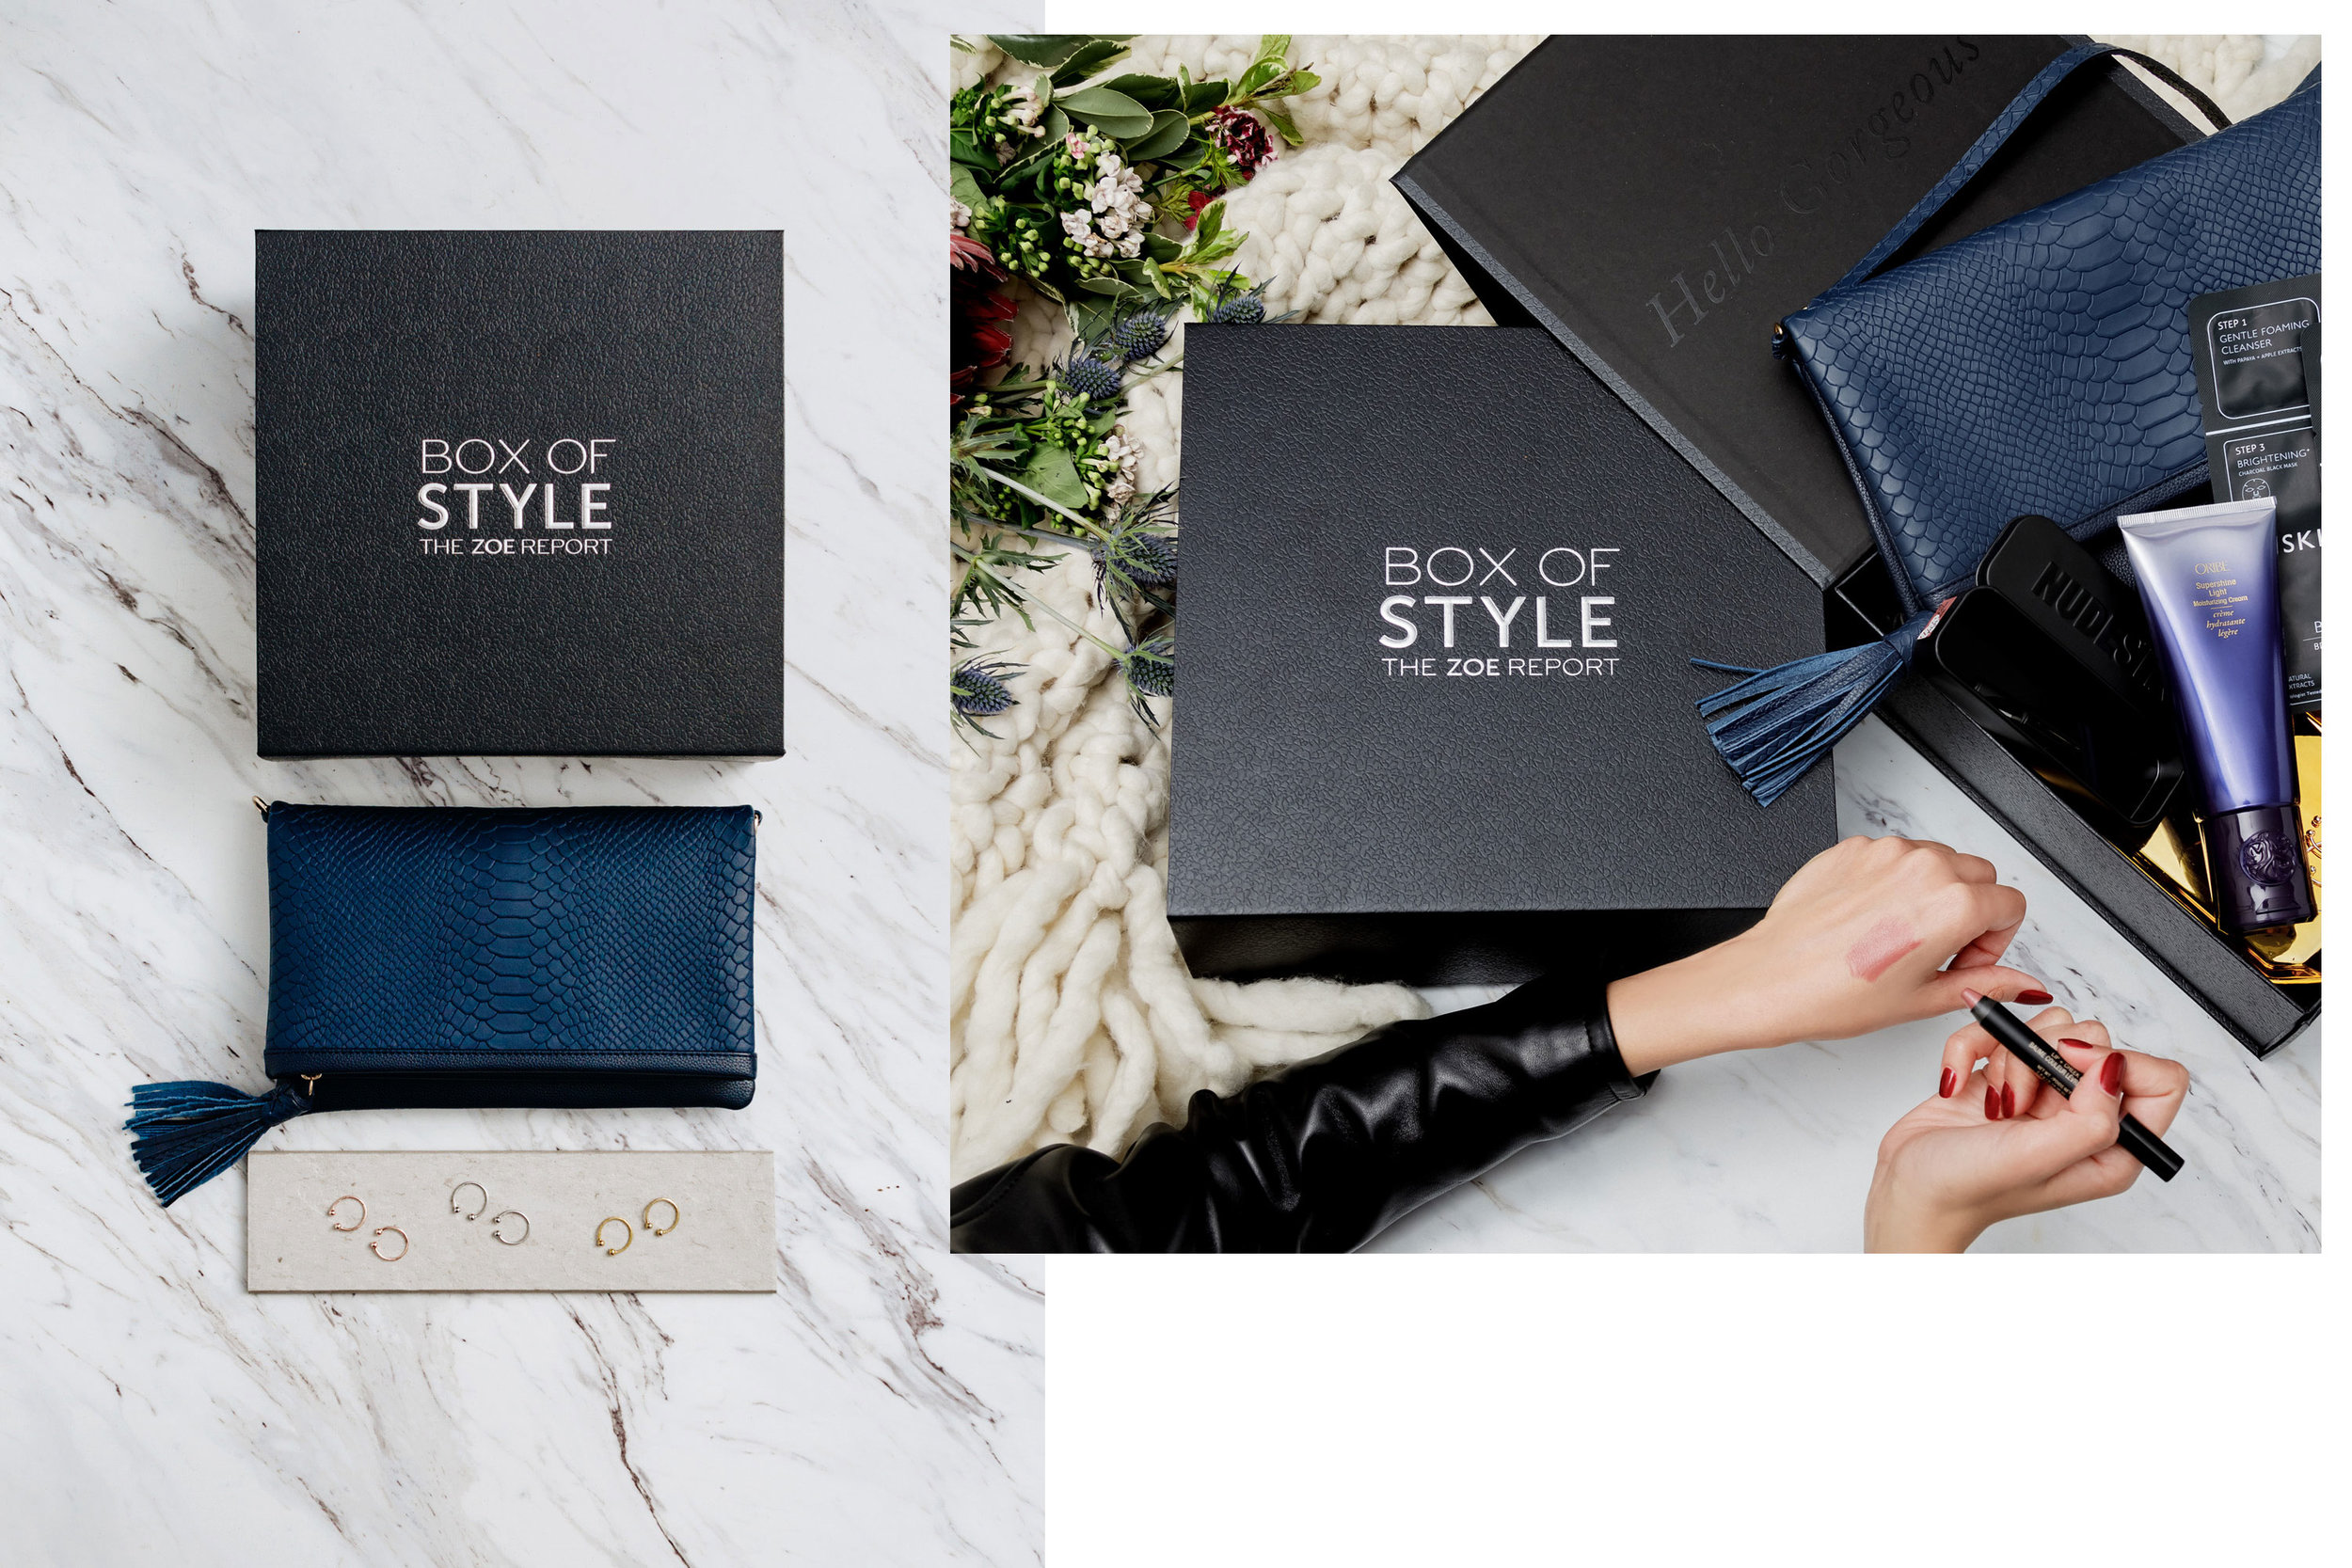 THE ZOE REPORT'S BOX OF STYLE FALL 2017